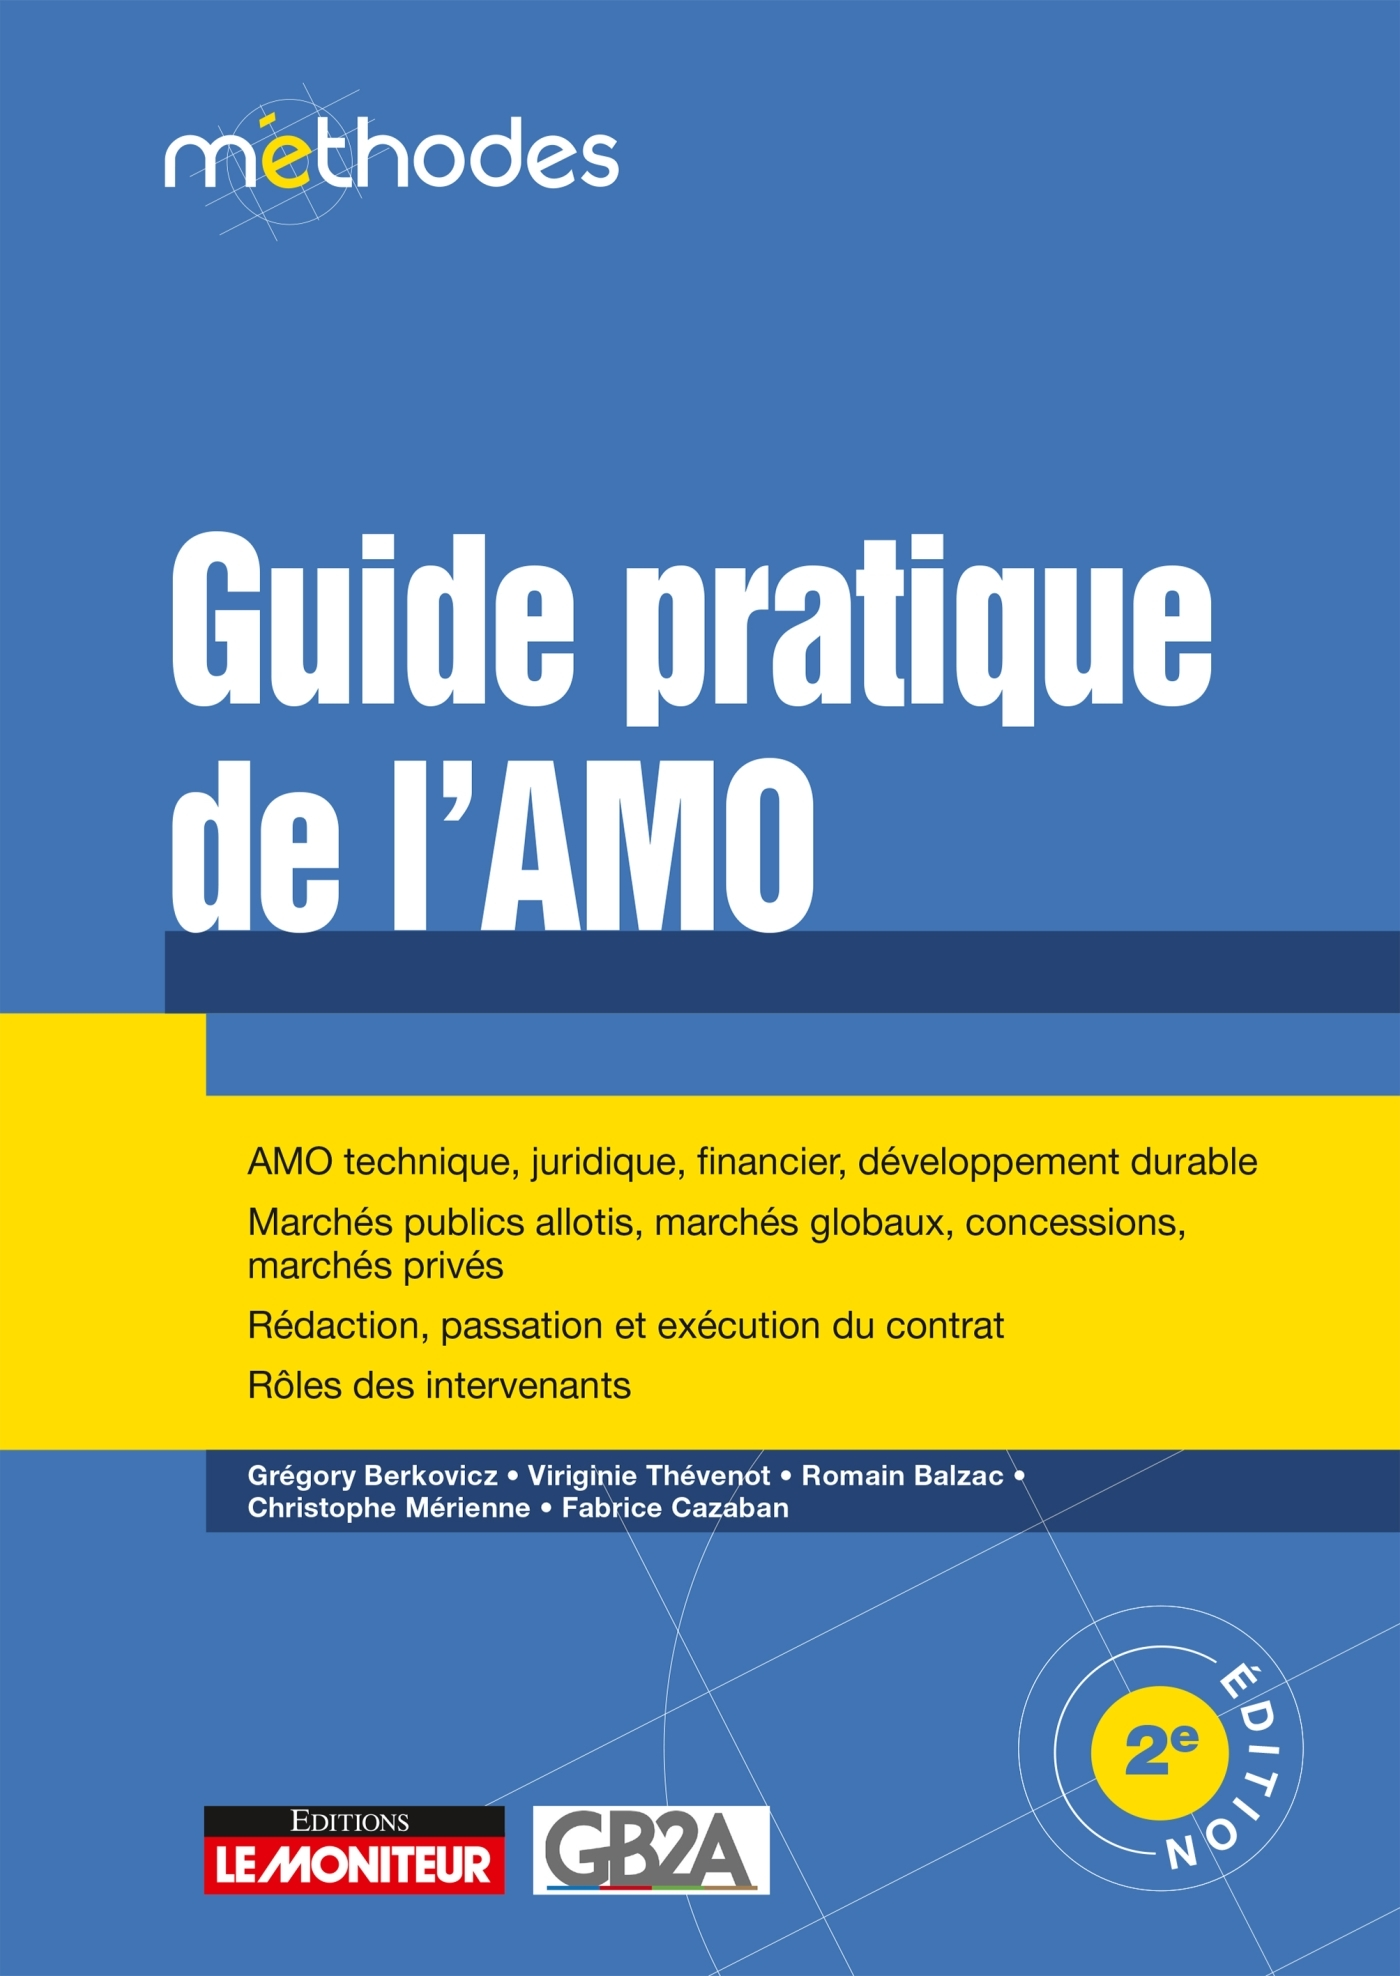 LE MONITEUR - 2E EDITION - GUIDE PRATIQUE DE L'AMO - AMO TECHNIQUE, JURIDIQUE, FINANCIER - MARCHES P